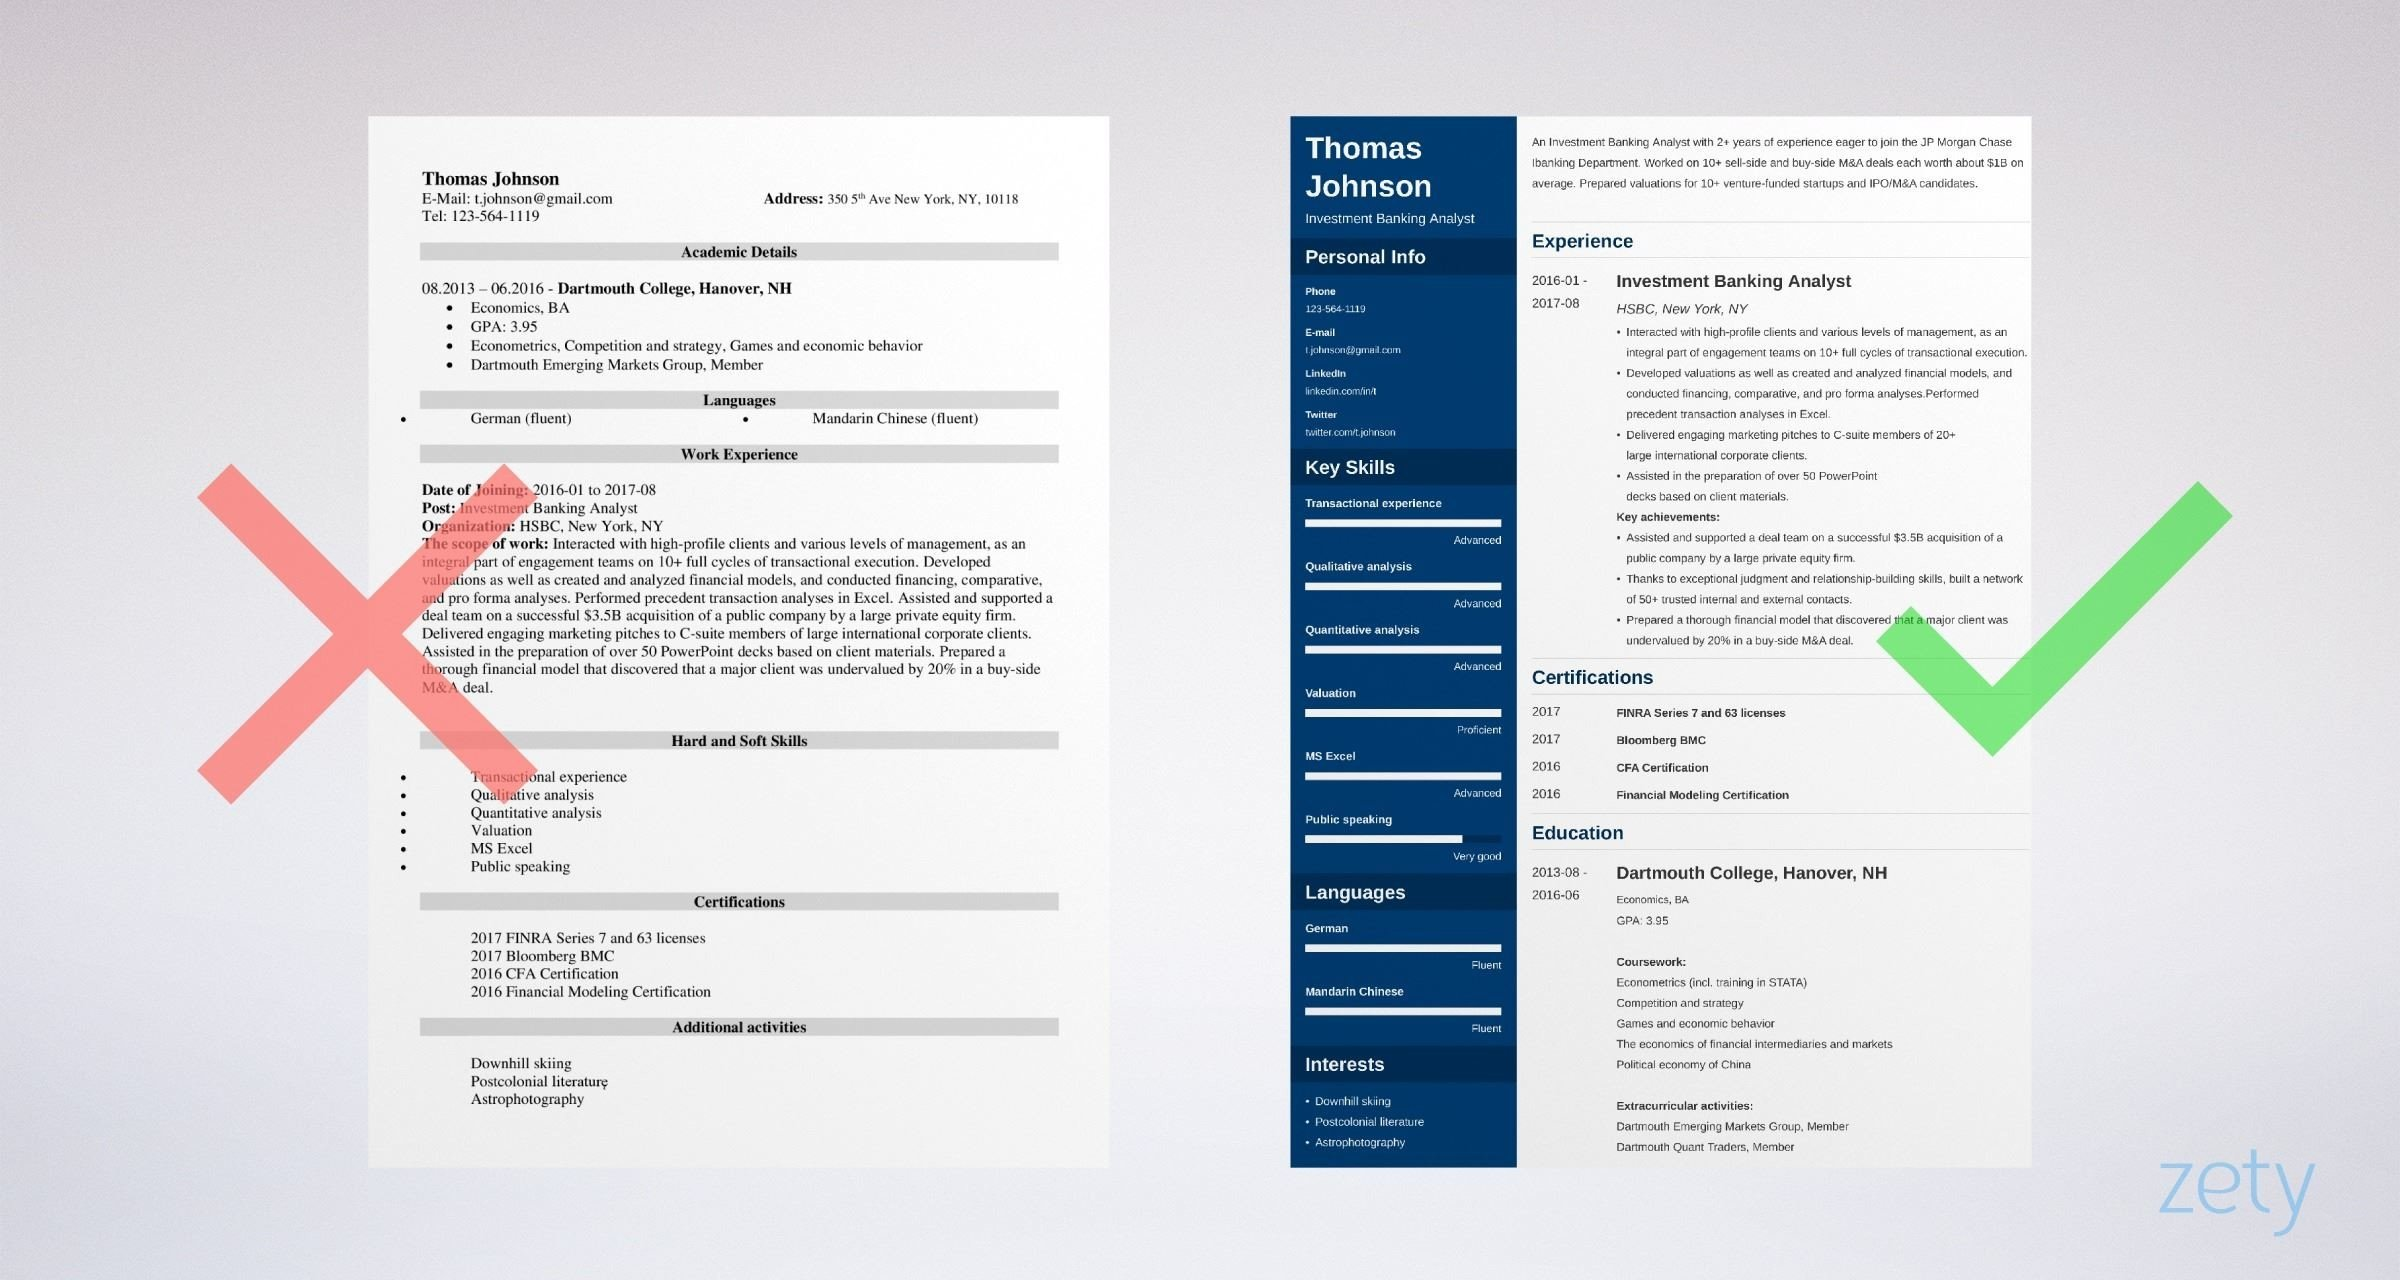 investment banking resume template guide examples tips banker example cleaner objective Resume Investment Banking Resume Tips